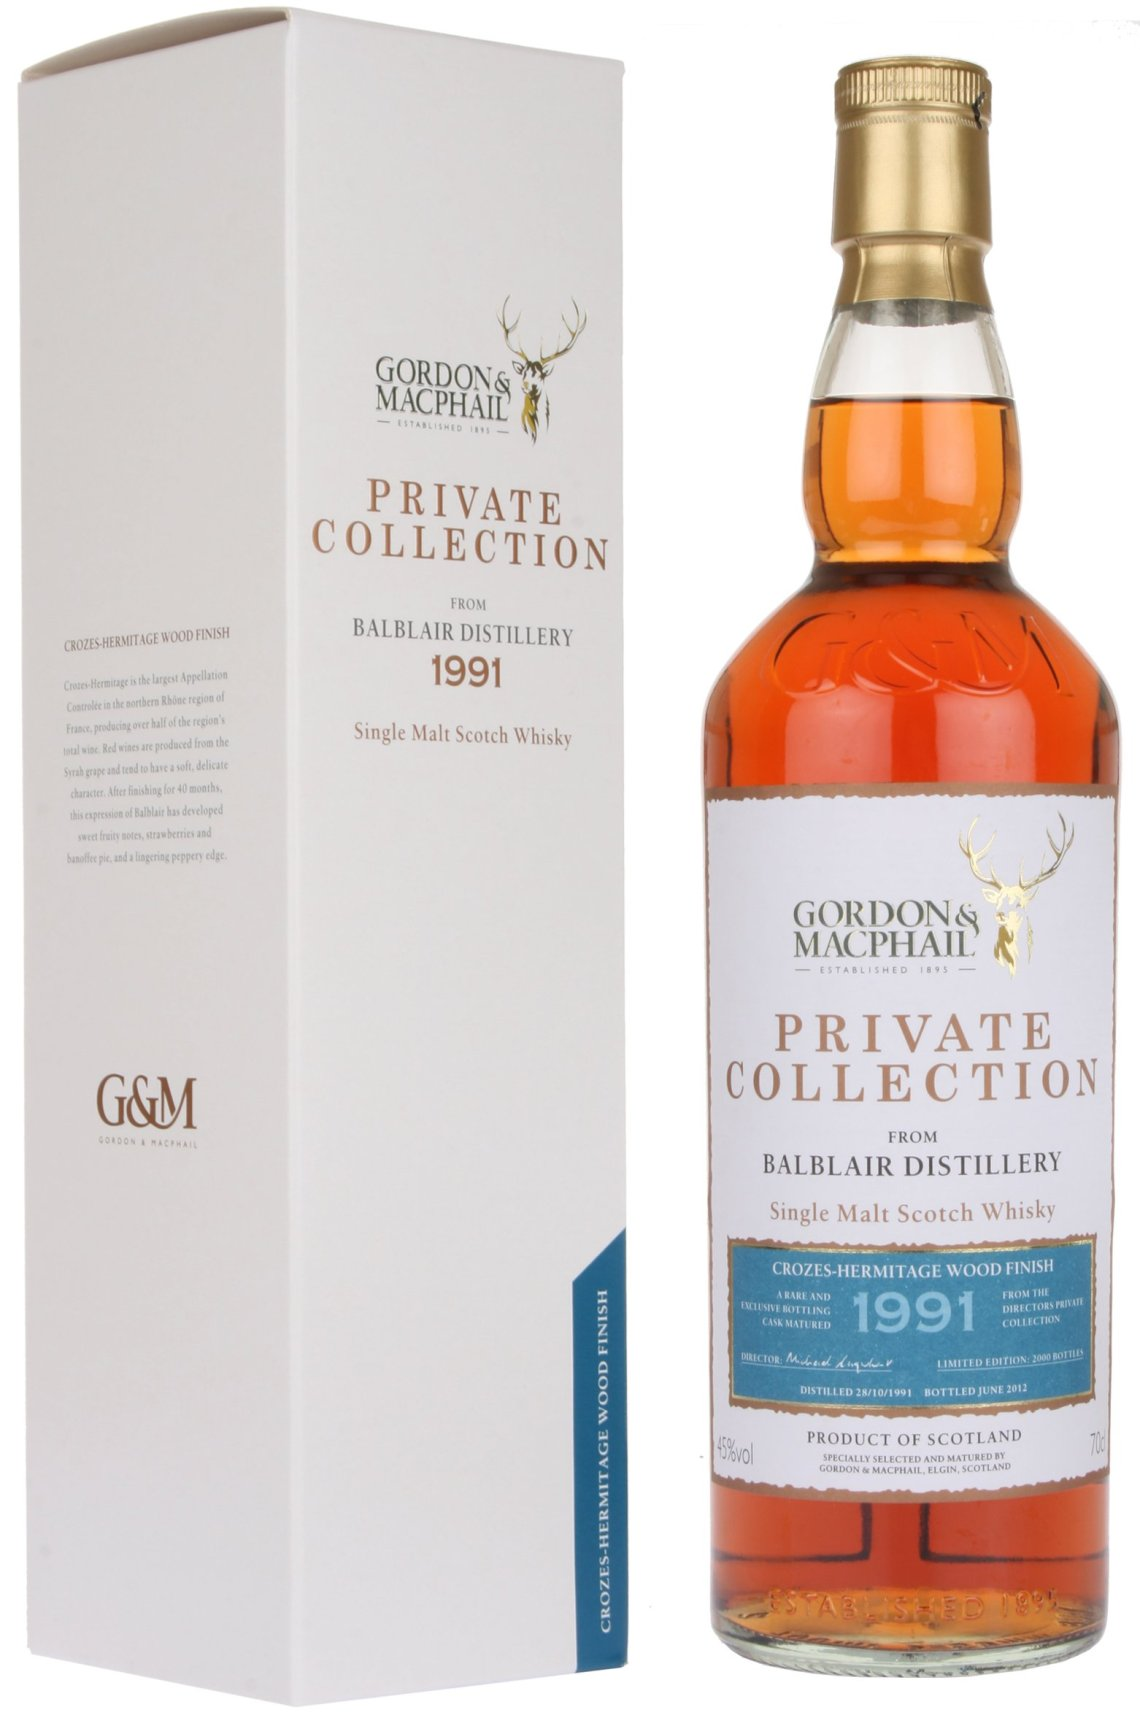 Gordon & MacPhail Private Collection Ledaig St. Joseph Wood Finish 19 Years Old